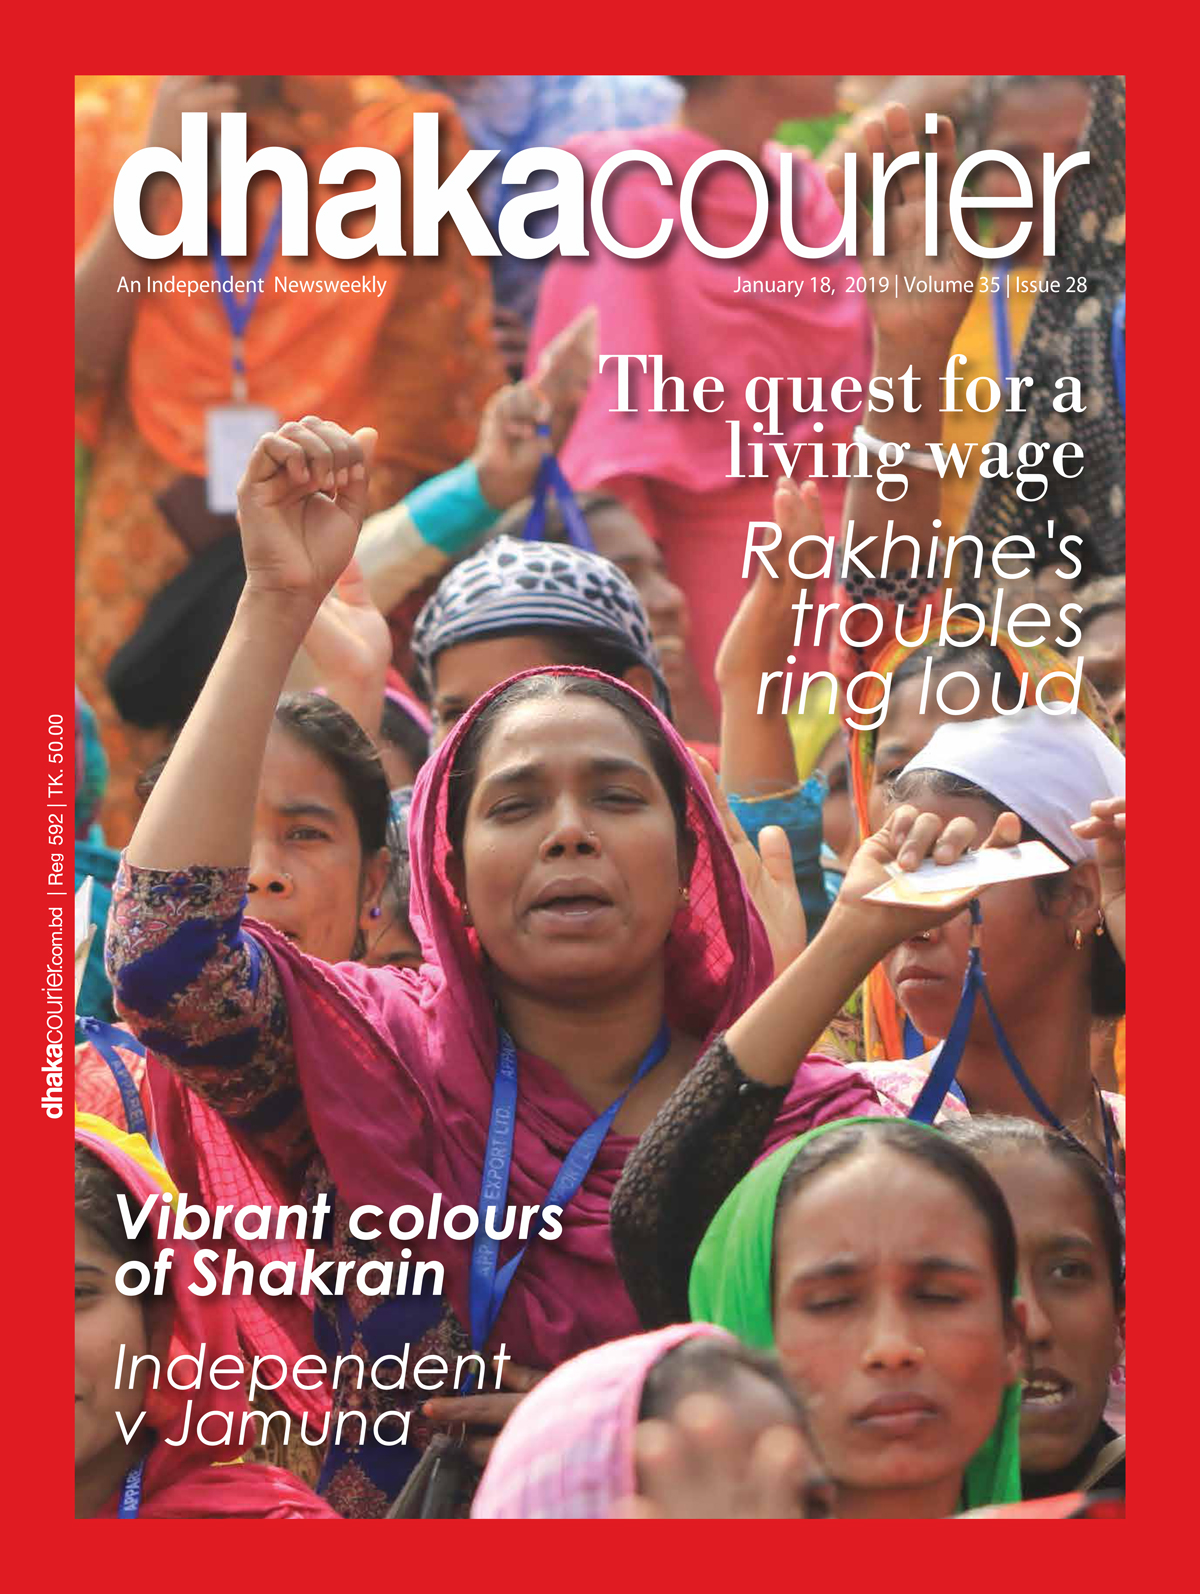 DhakaCourier Vol 35 Issue 28